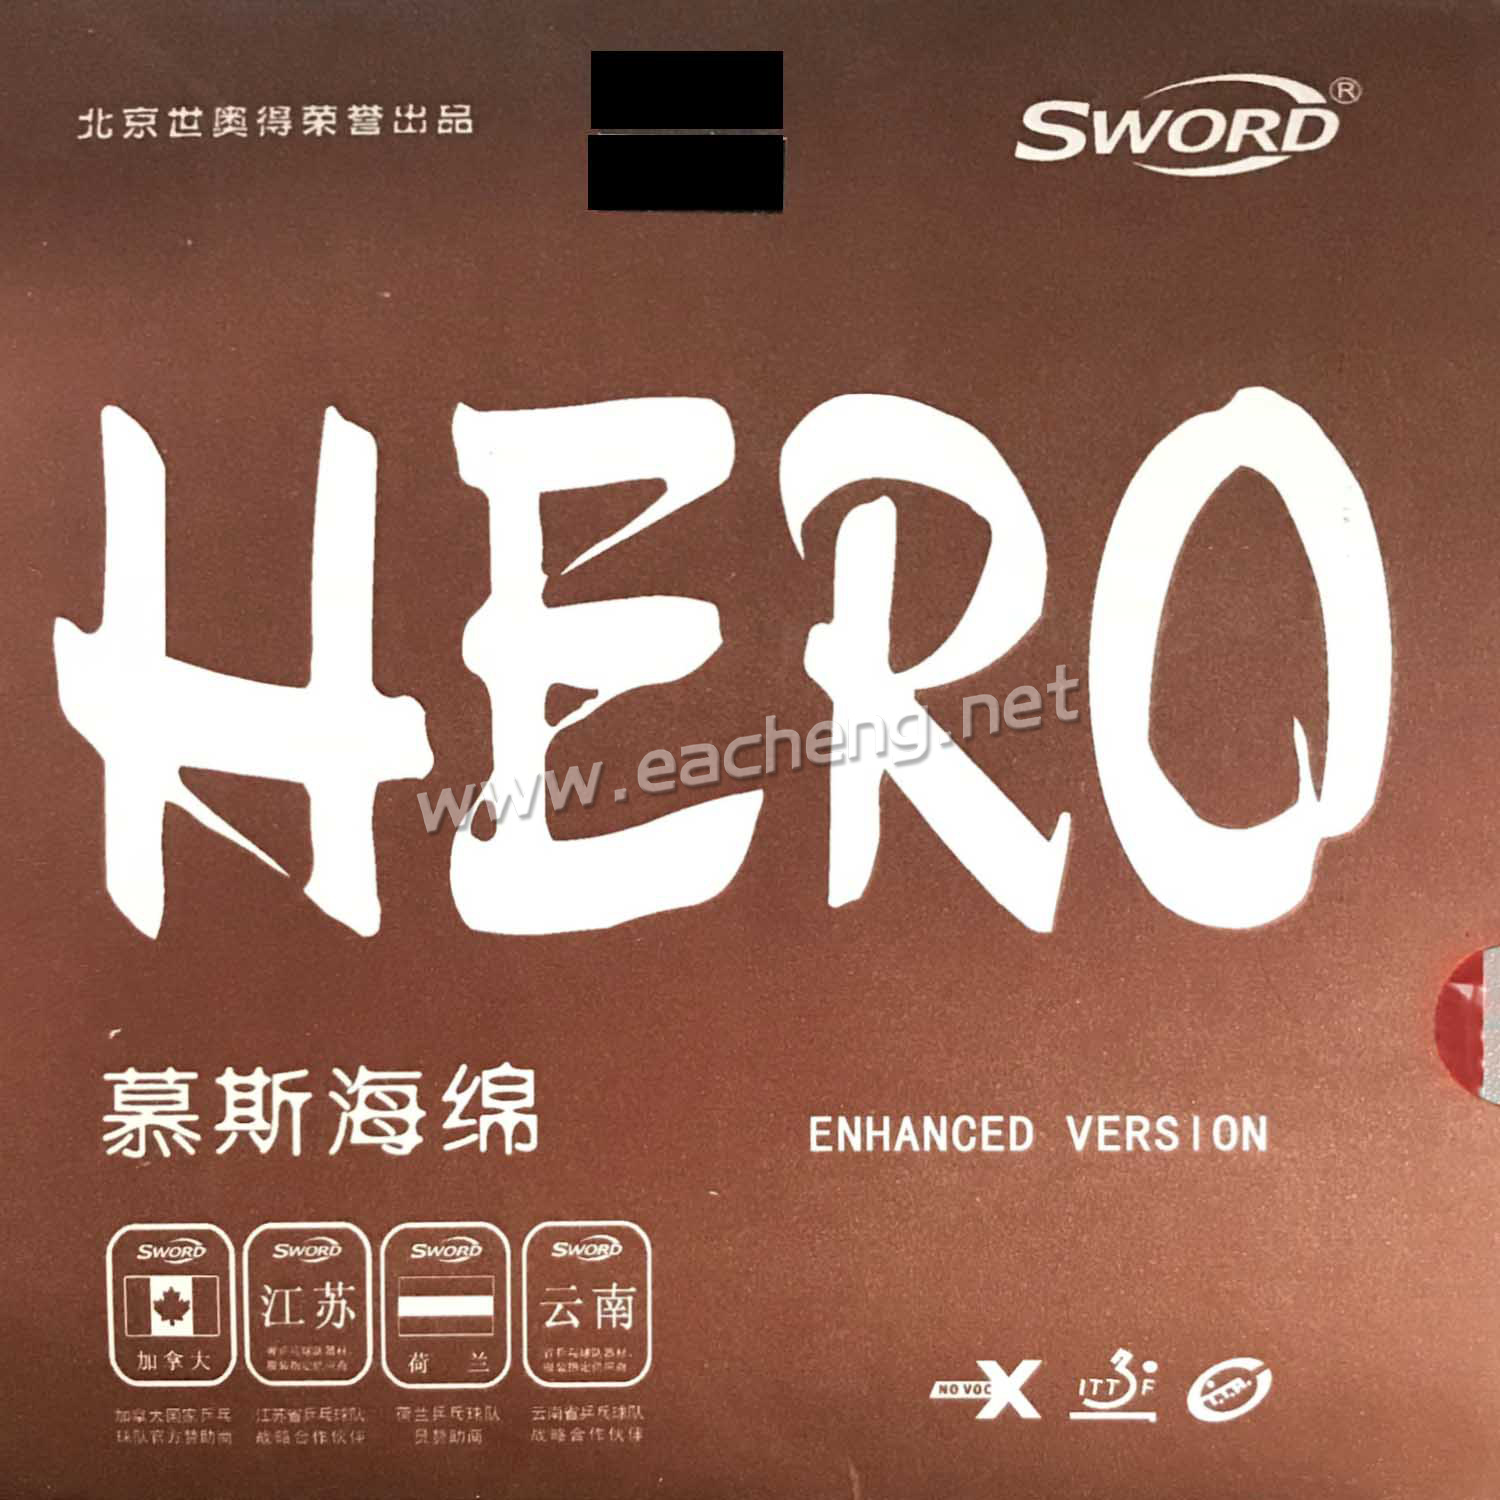 Sword Hero Enhanced version